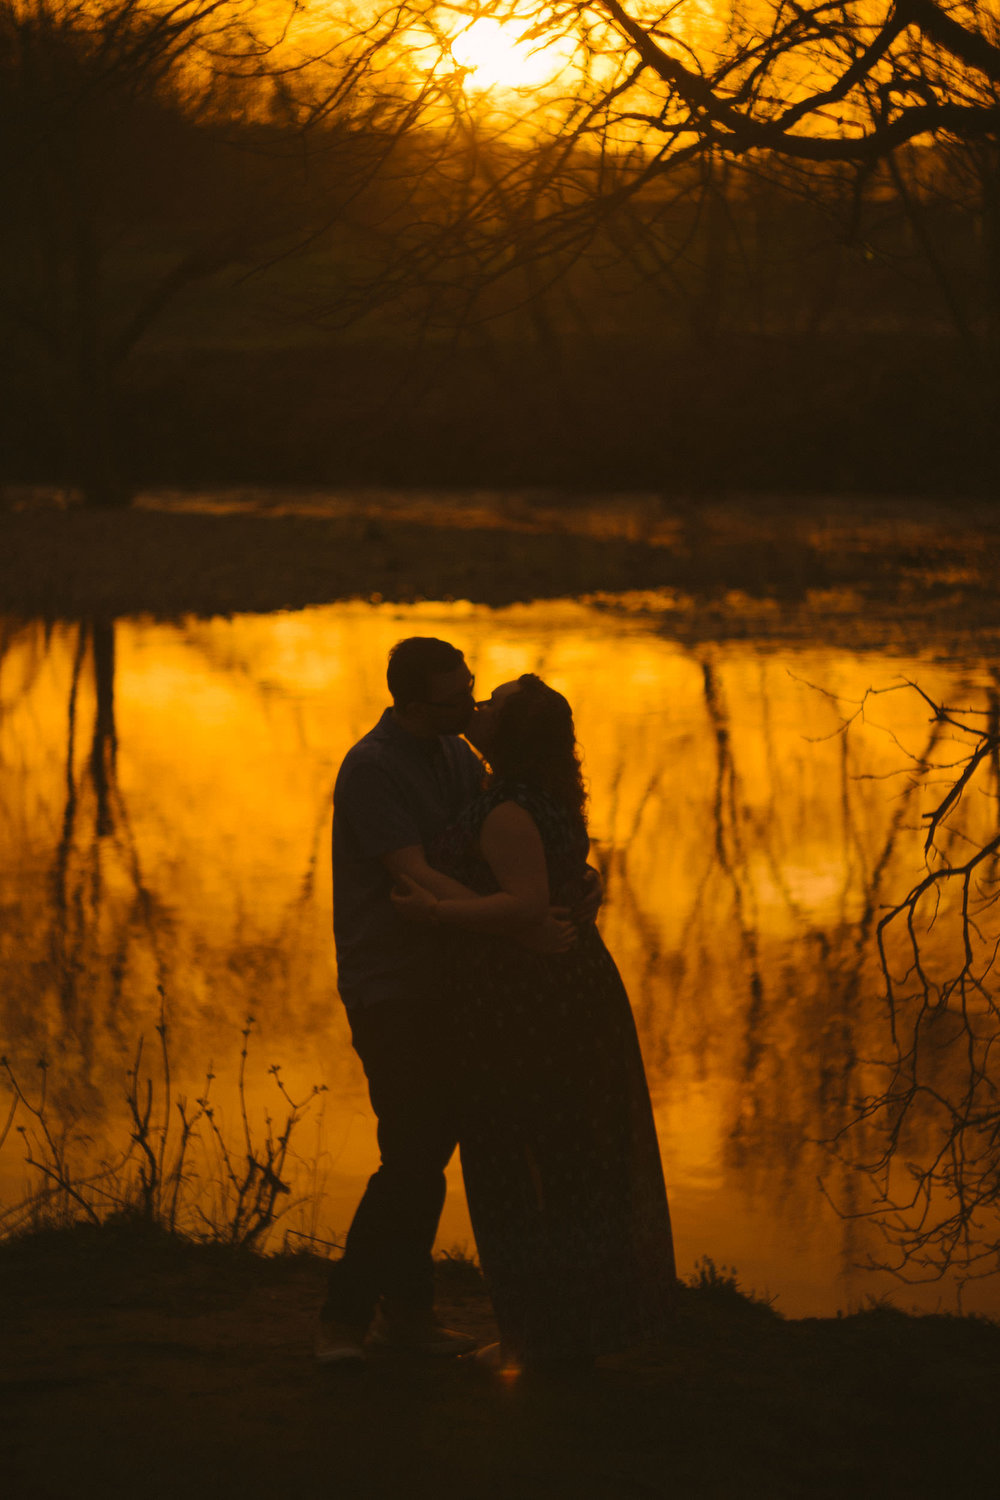 Silhouettes of a couple kissing with golden sunset reflected in water behind them